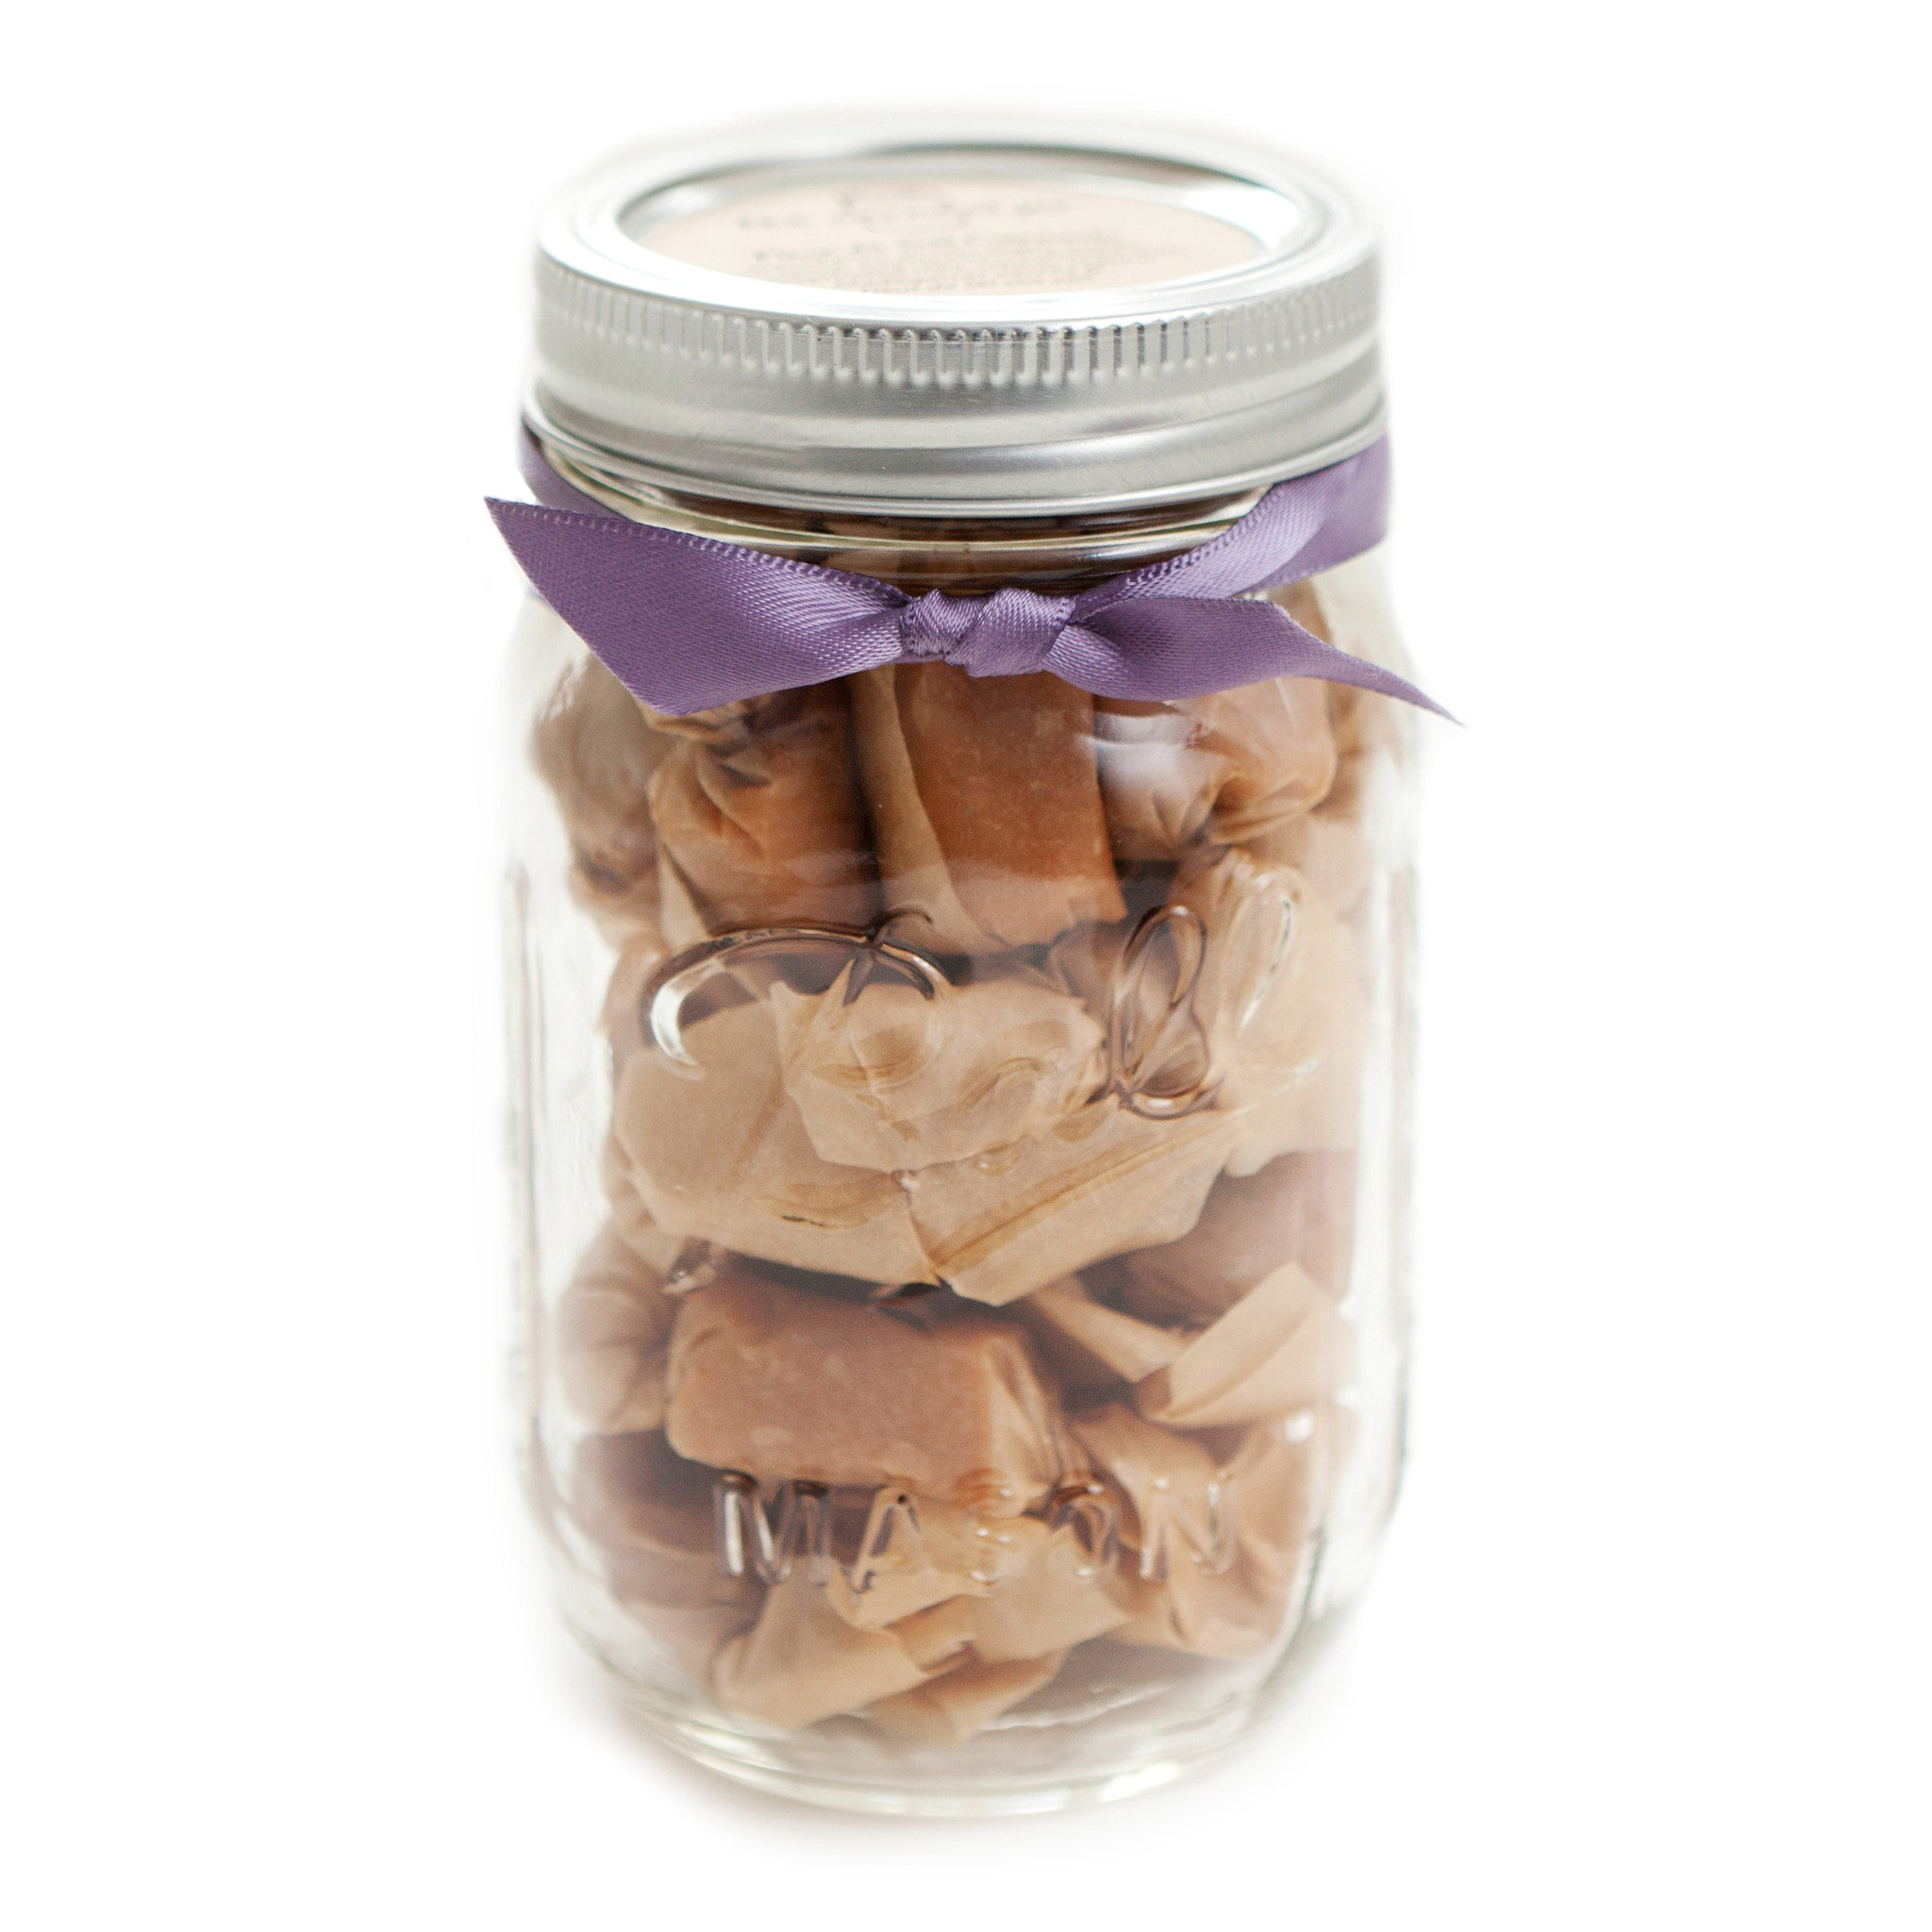 Thank You Gift, Teacher Gift, Boss Gift, Foodie Gift, Salted Caramels, Fleur de Sel Caramels - (1) 1/2 Pound Jar of Caramels